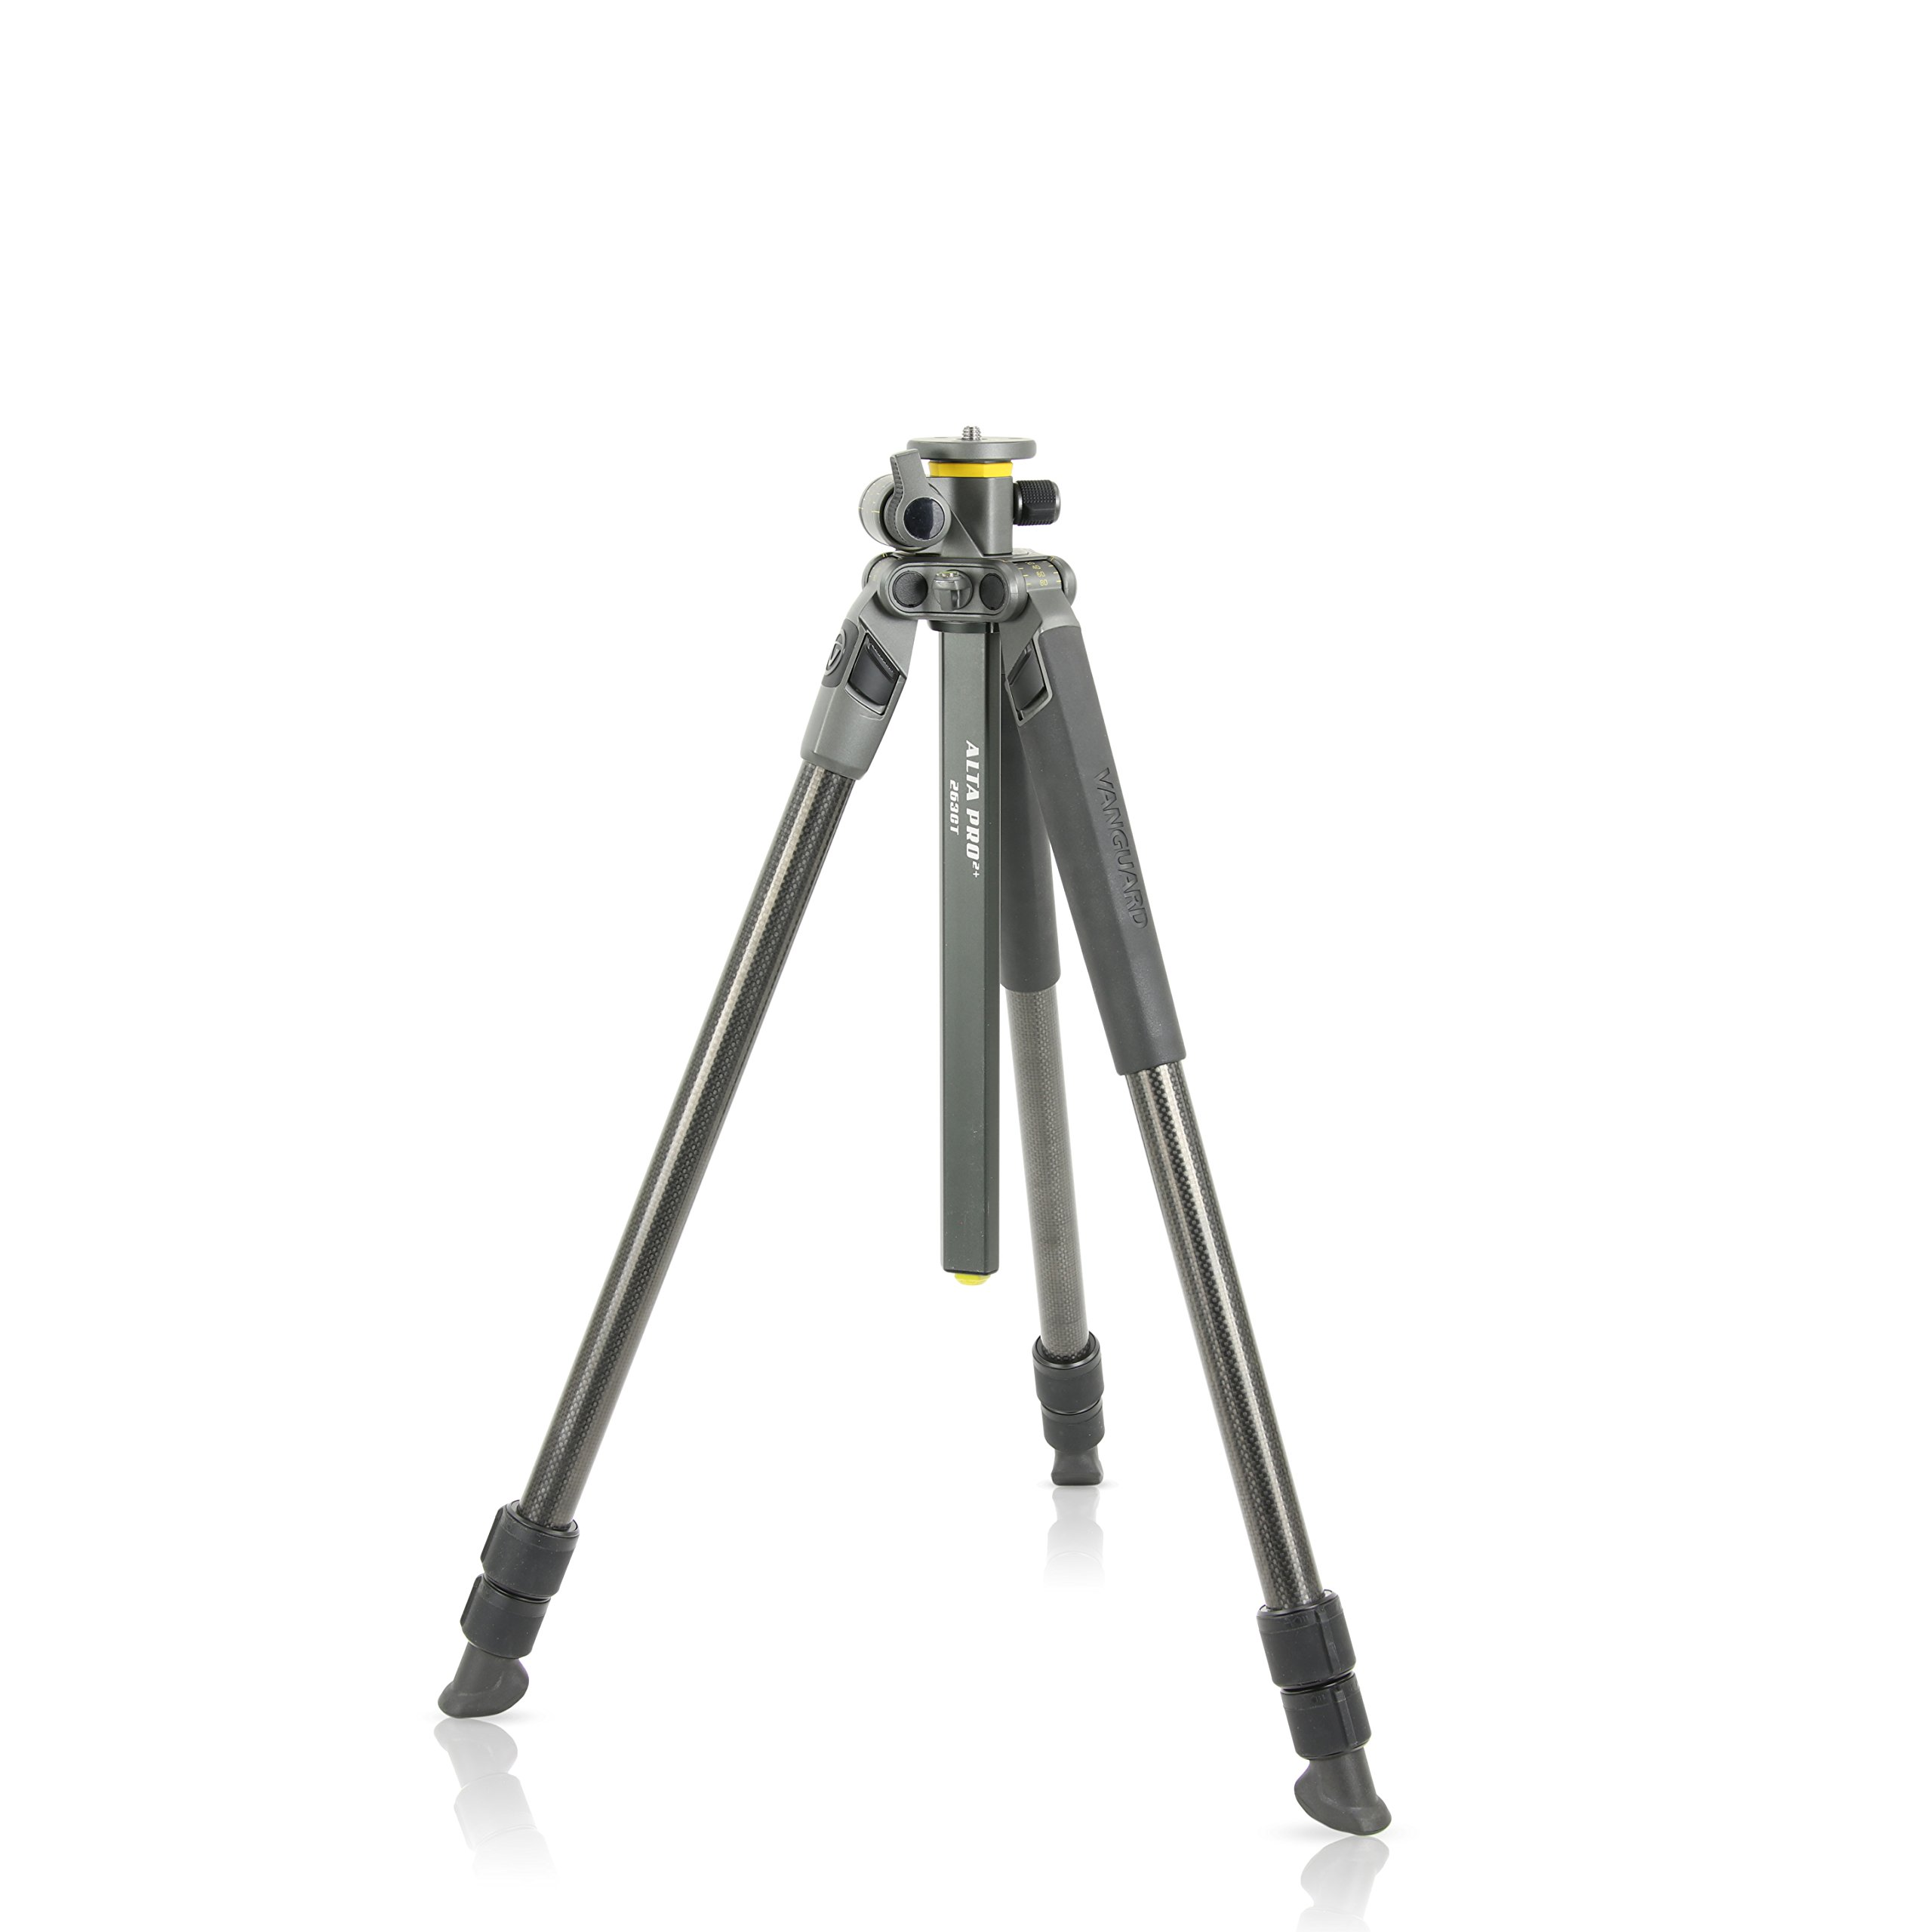 Vanguard Alta Pro 2+ 263CT Carbon Fiber Tripod with Multi-Angle Center Column for Sony, Nikon, Canon DSLR Cameras